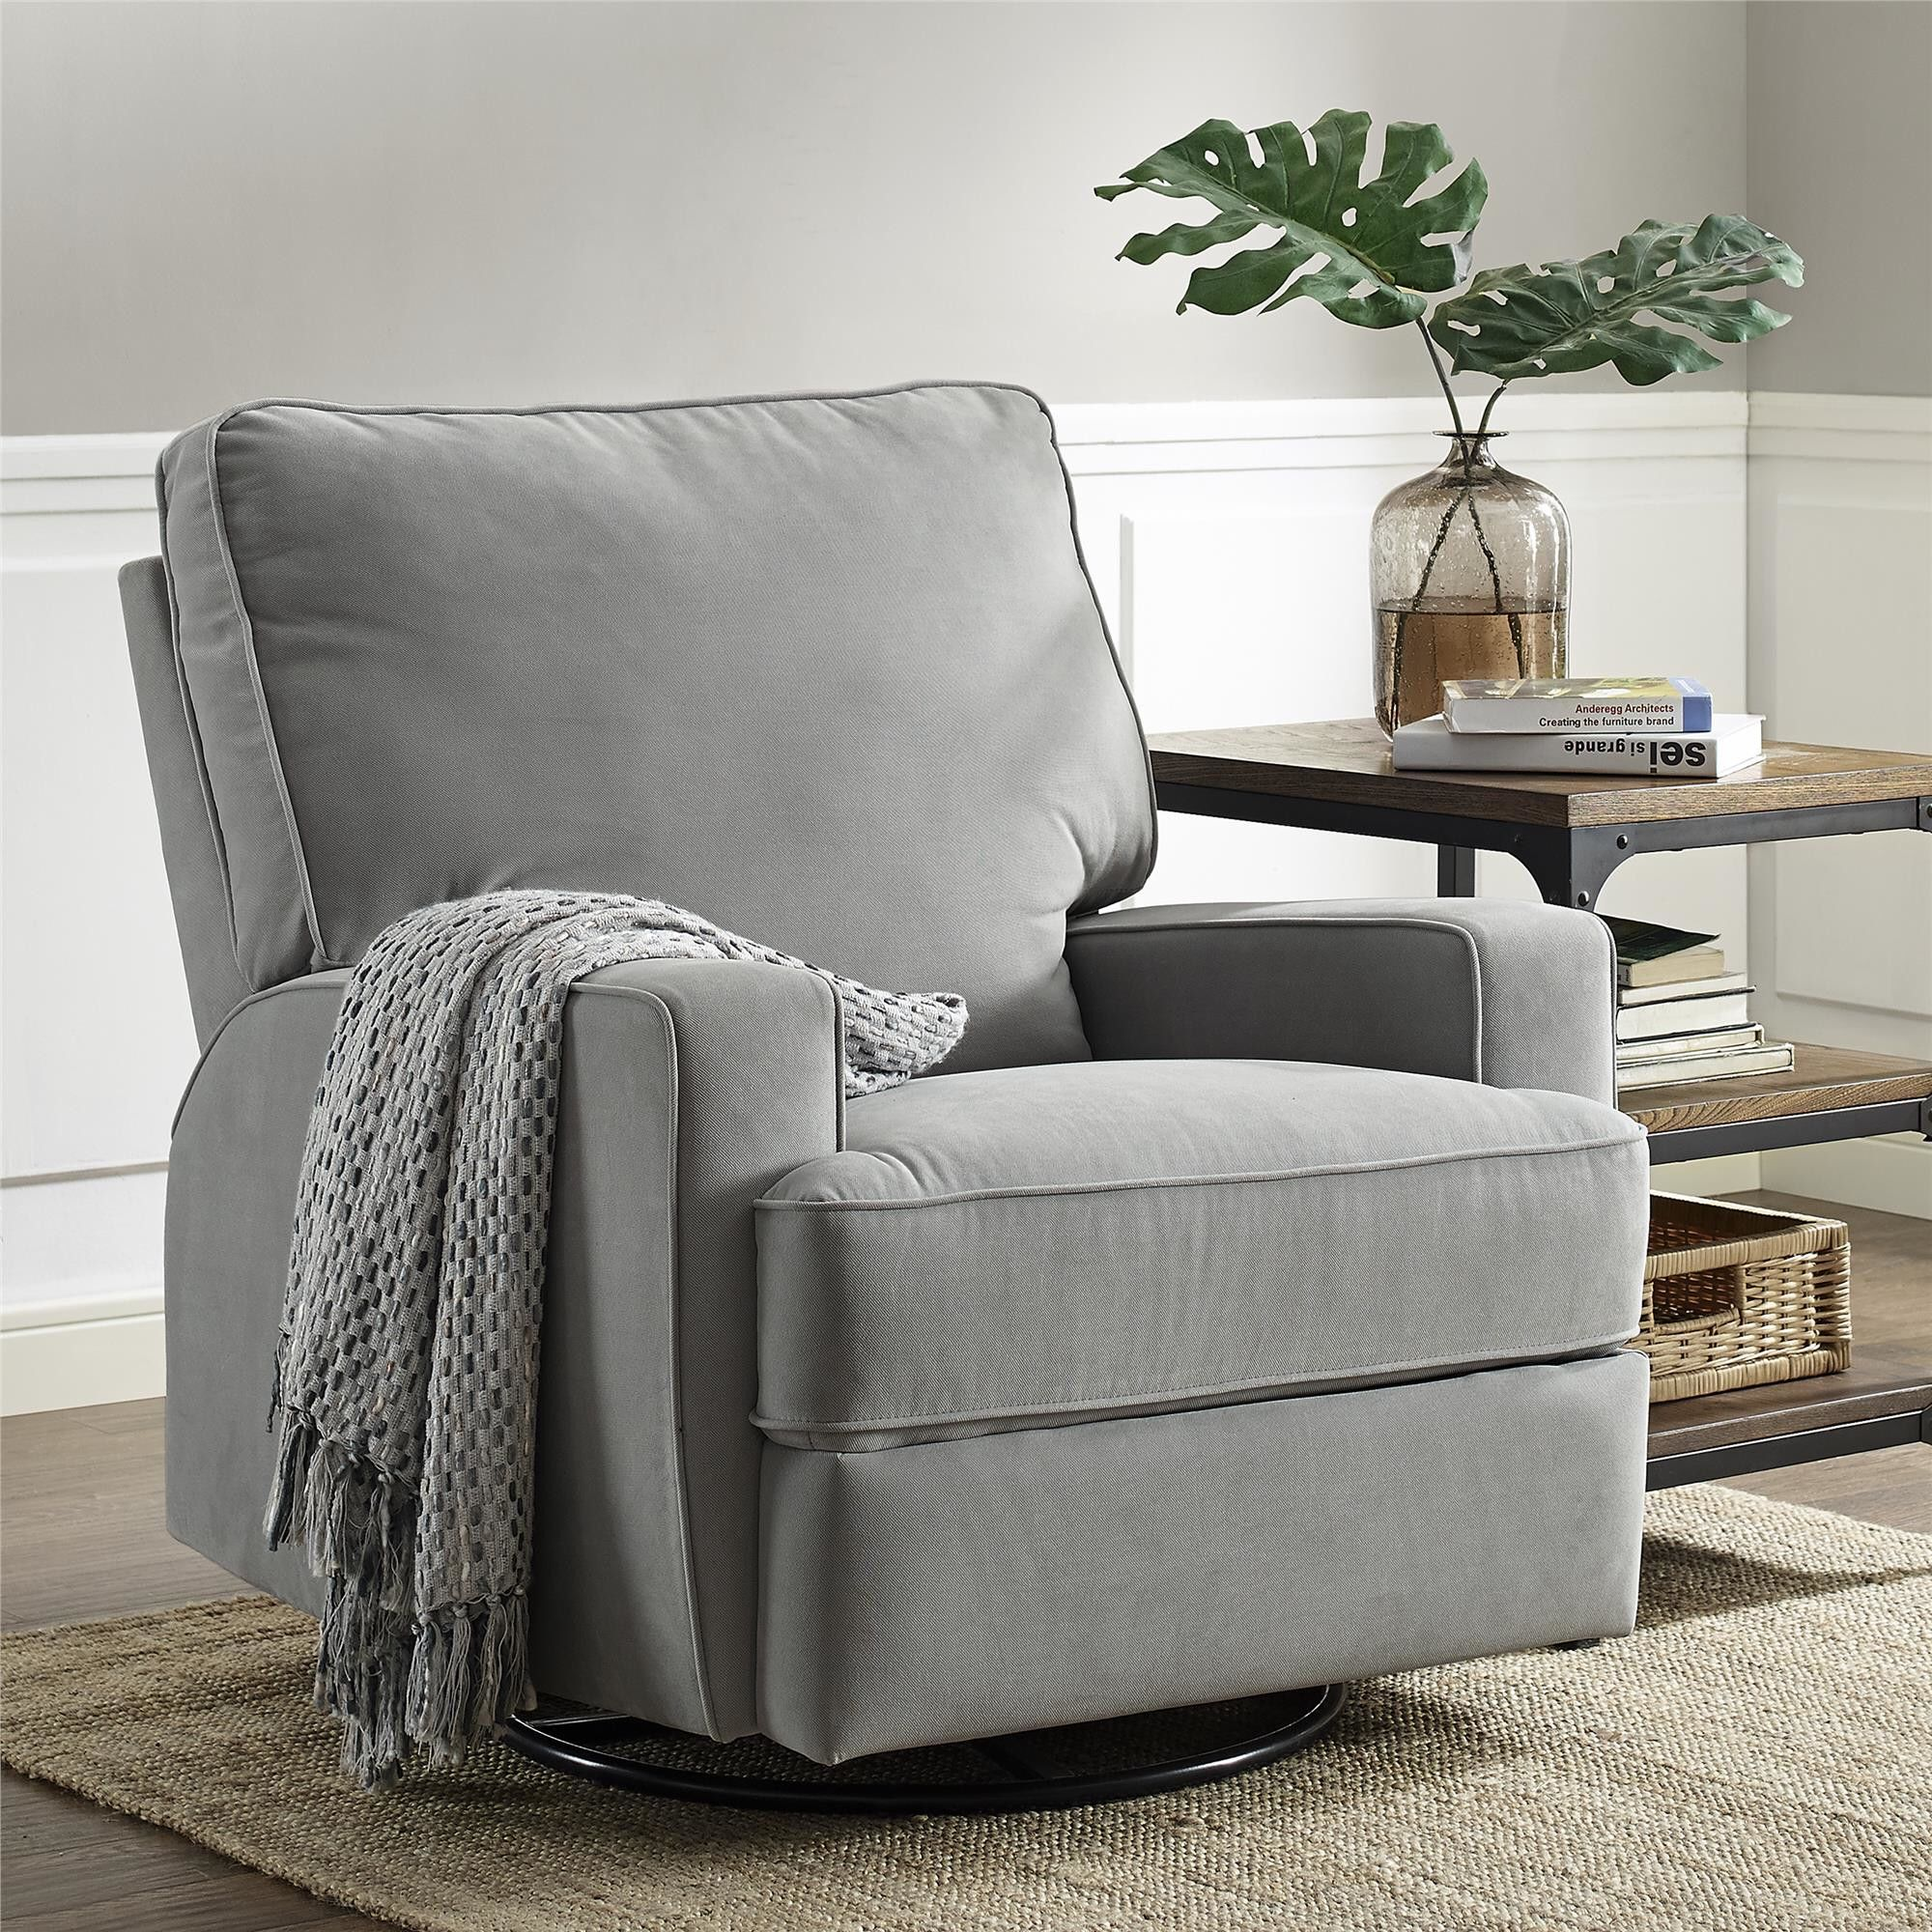 Swivel Rocker Recliner Chair Rylan Swivel Gliding Recliner Home Decorating Ideas Nursery